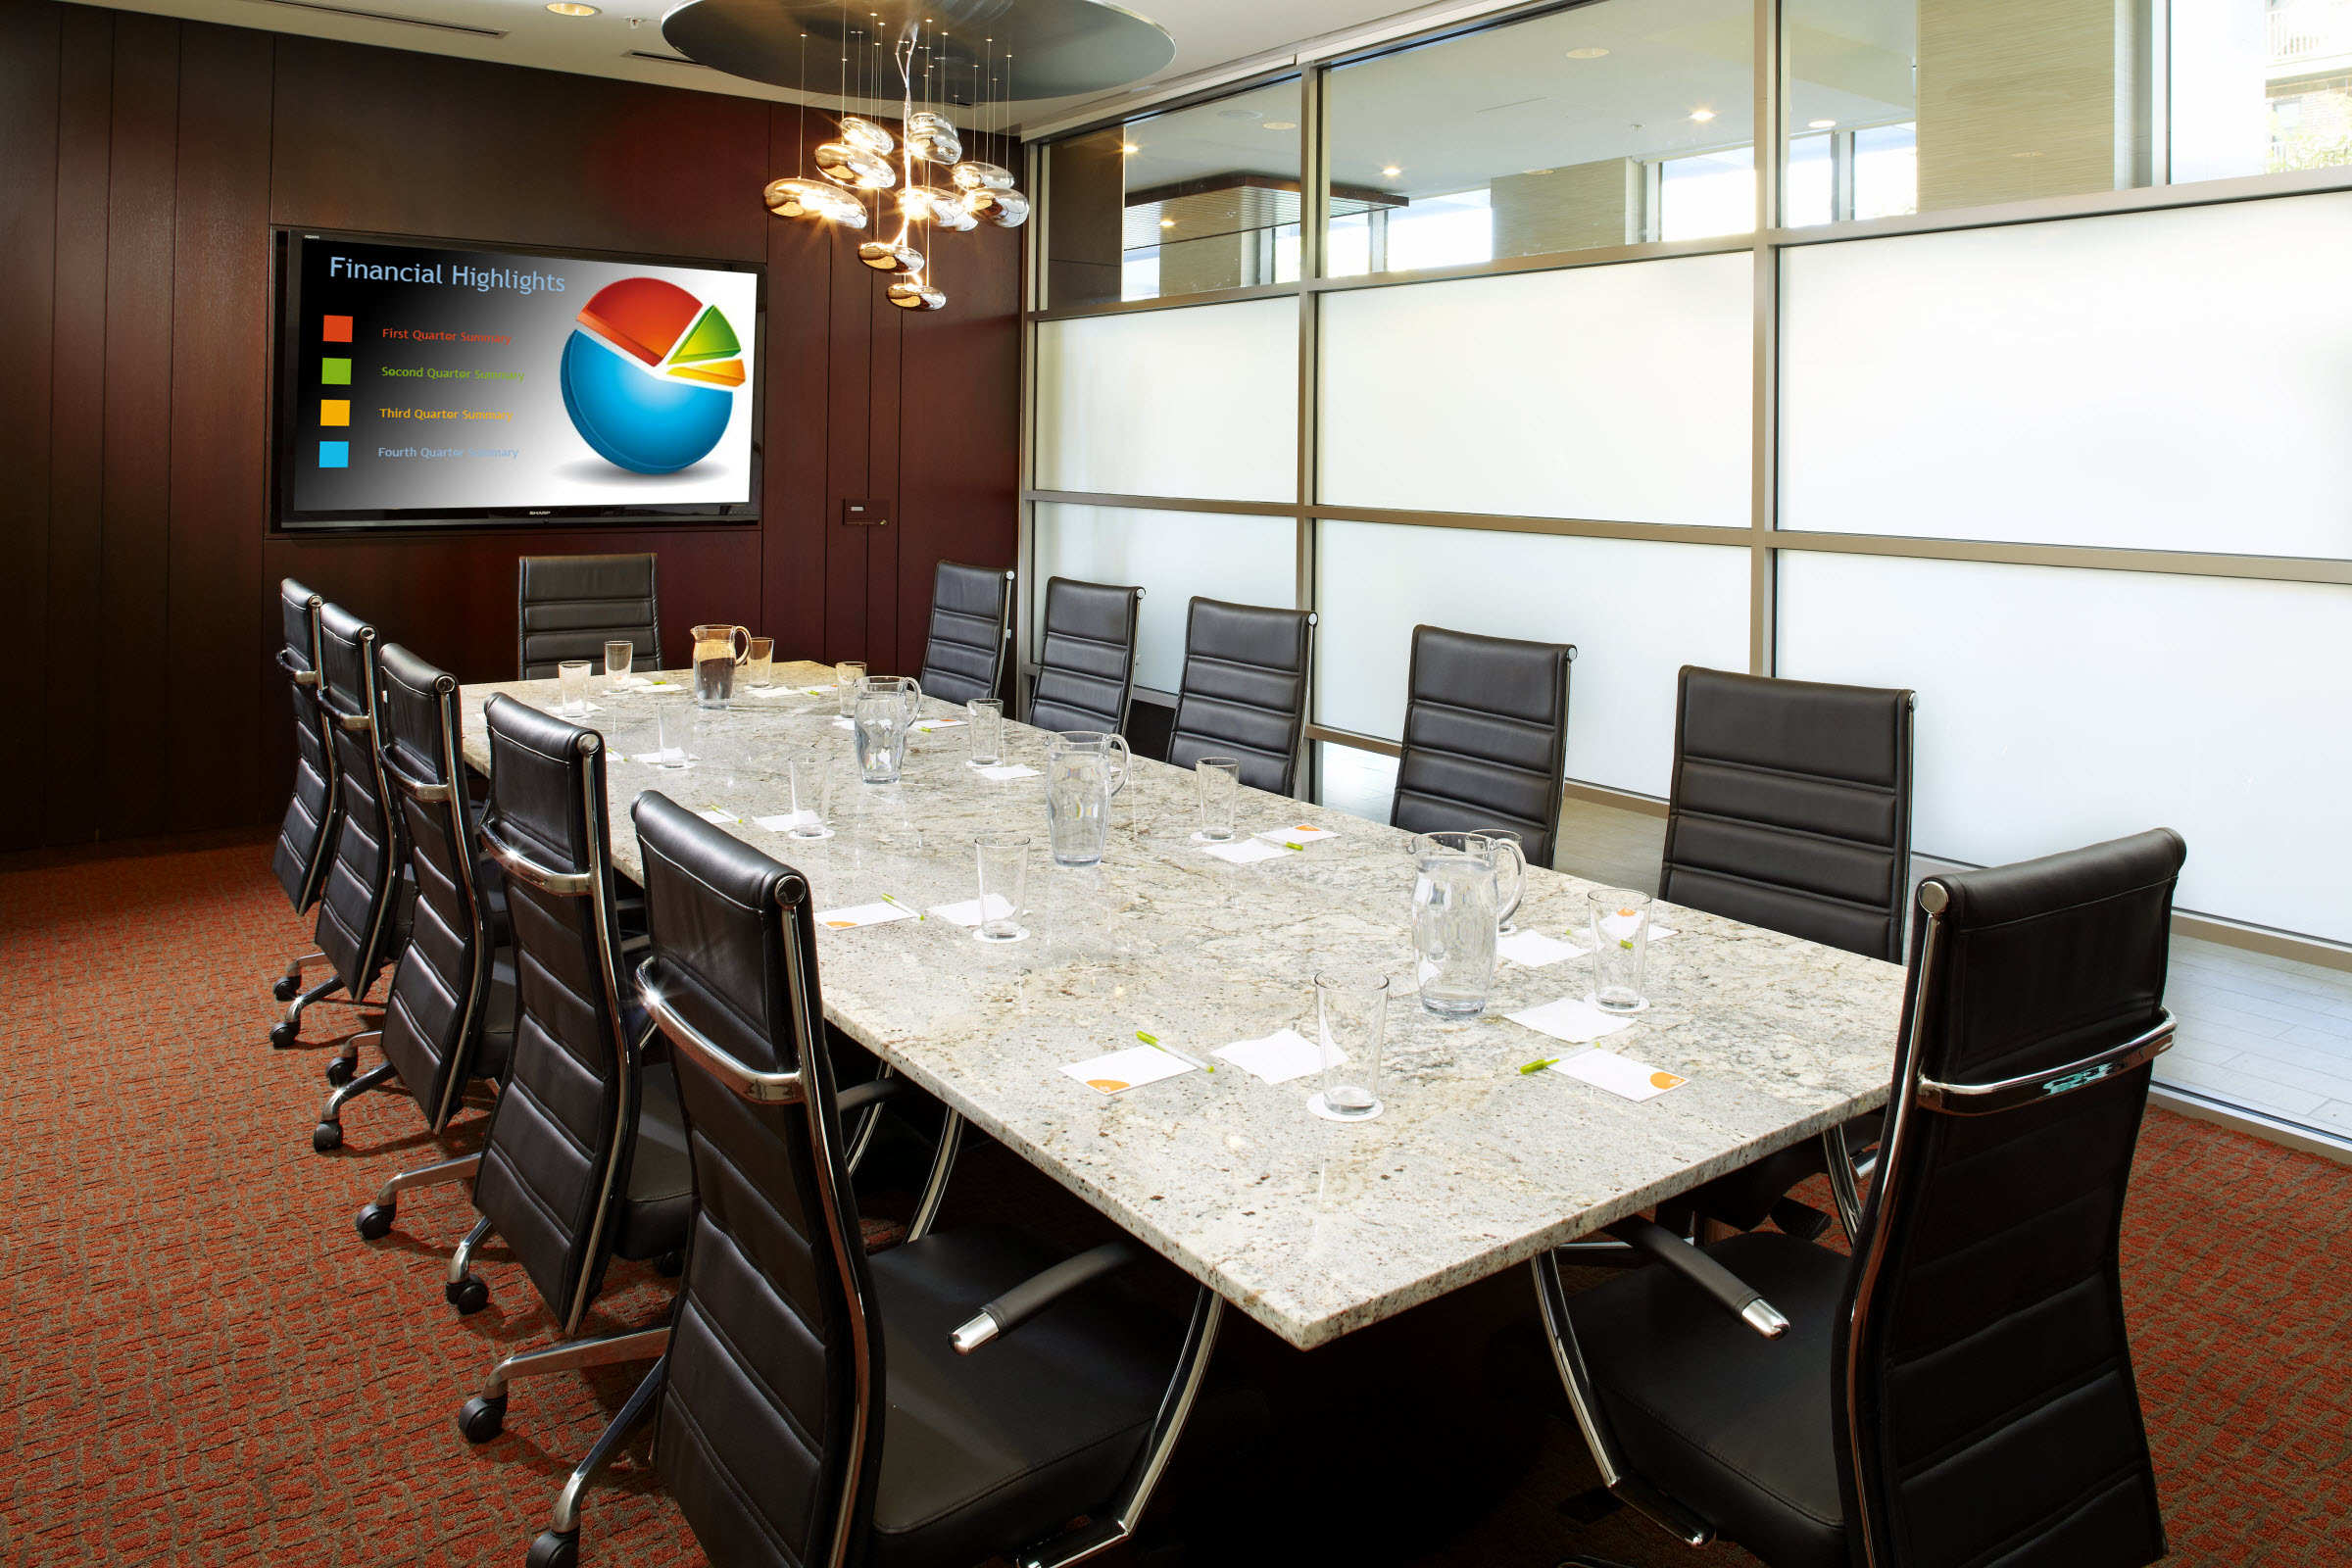 cleveland_uci_cy_cornell board room_2013